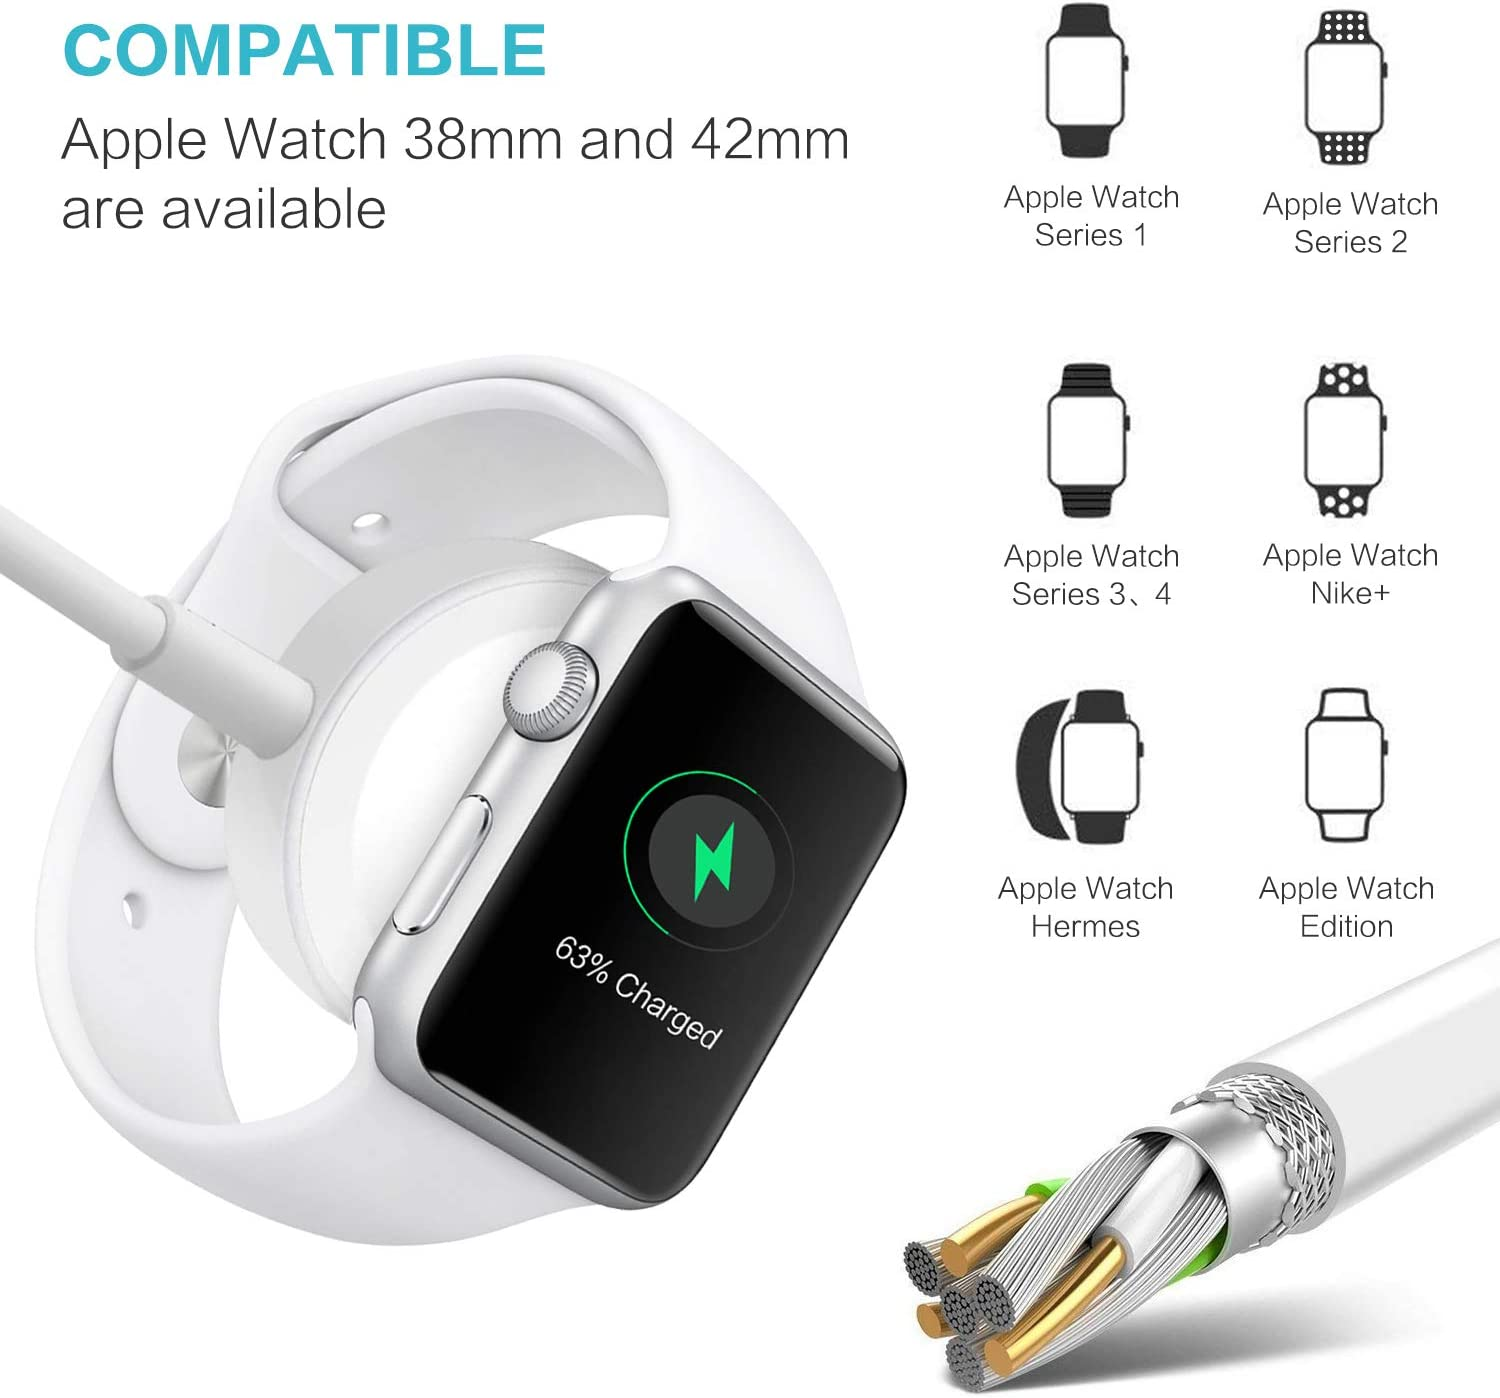 Blandstrs Charger for Apple Watch, Magnetic Wireless Charging Cable QI Cord Compatible with iWatch Series 5 4 3 2 1-3.3feet (1 Meter) (White - 2 in 1)